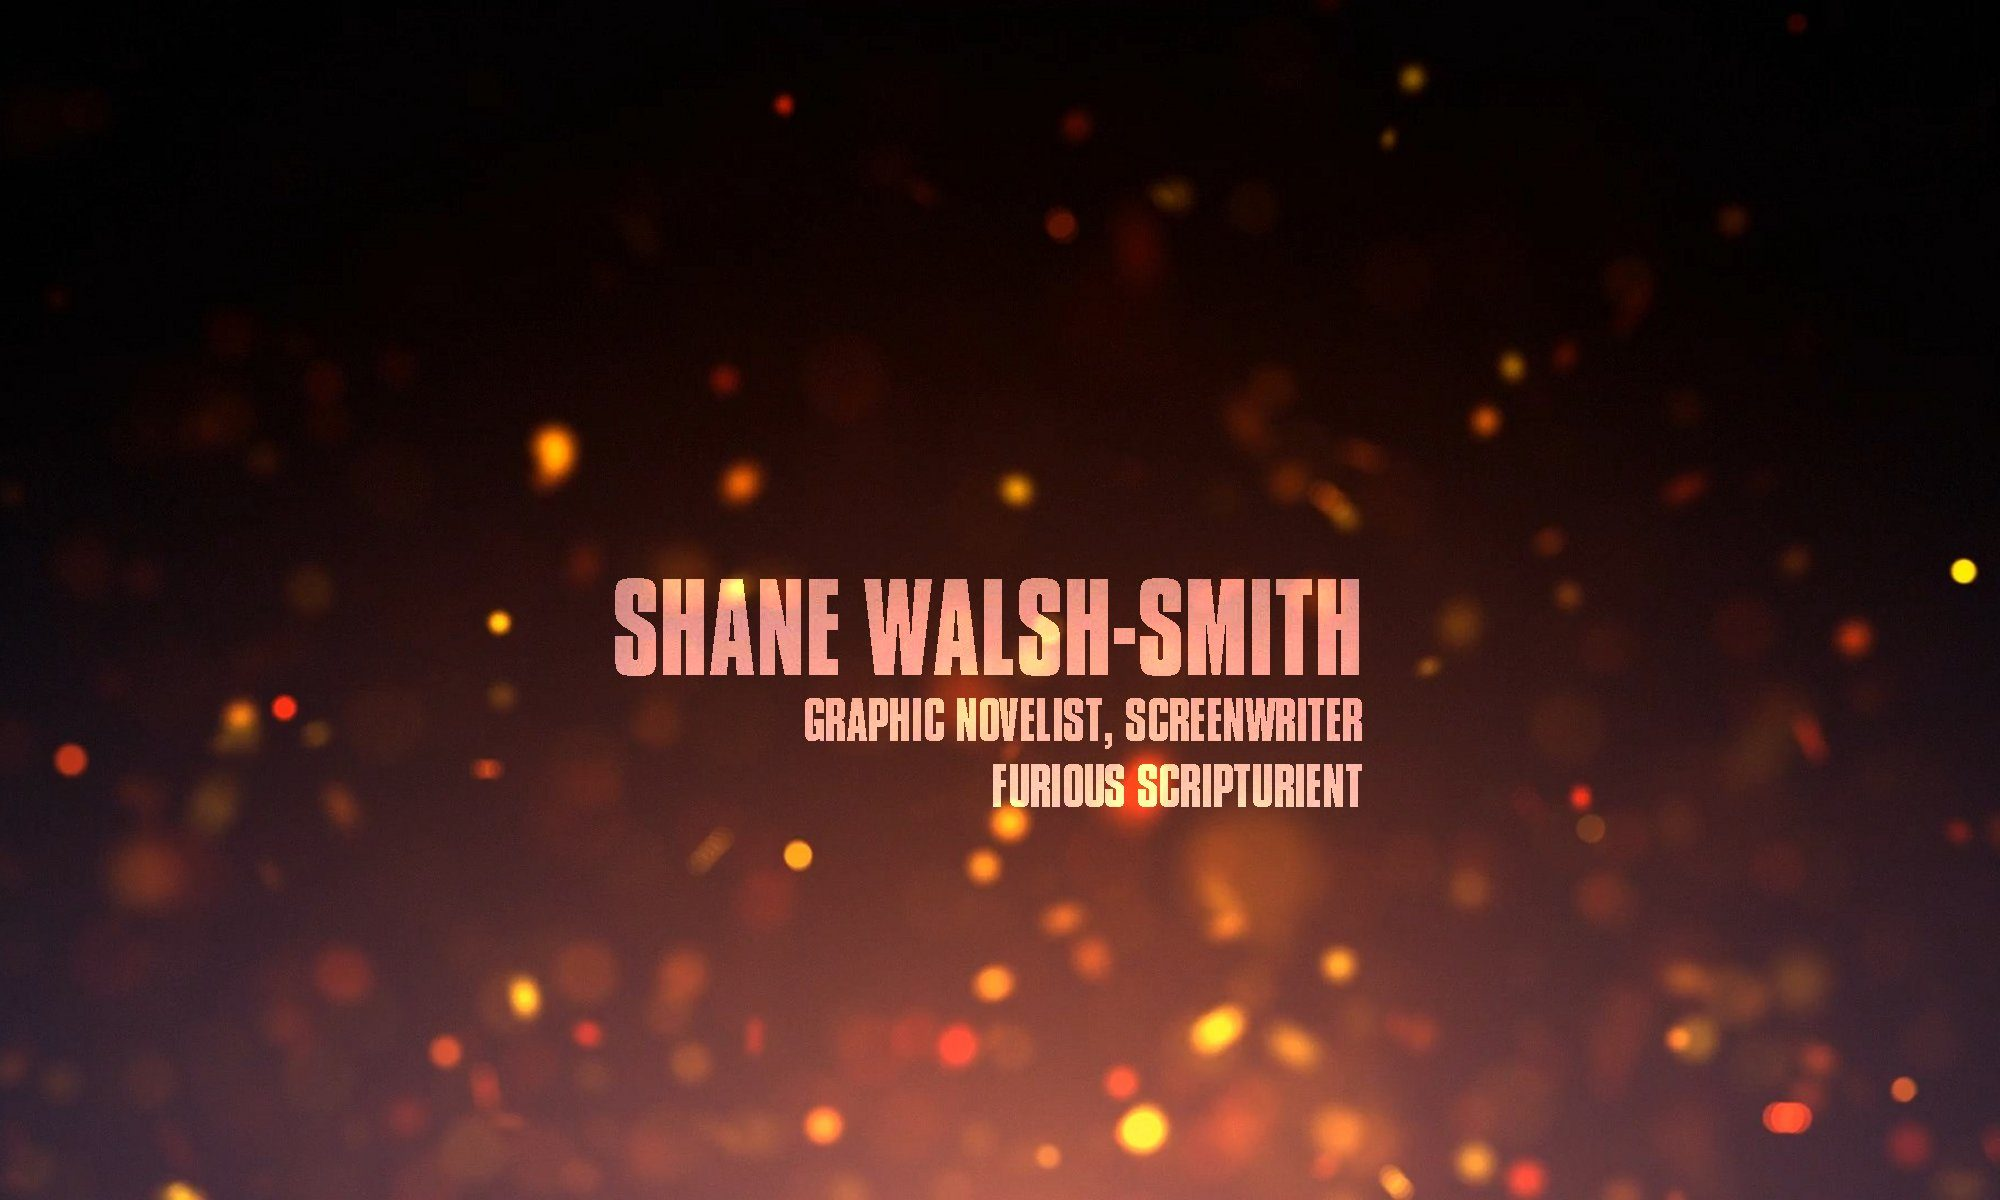 Shane Walsh-Smith